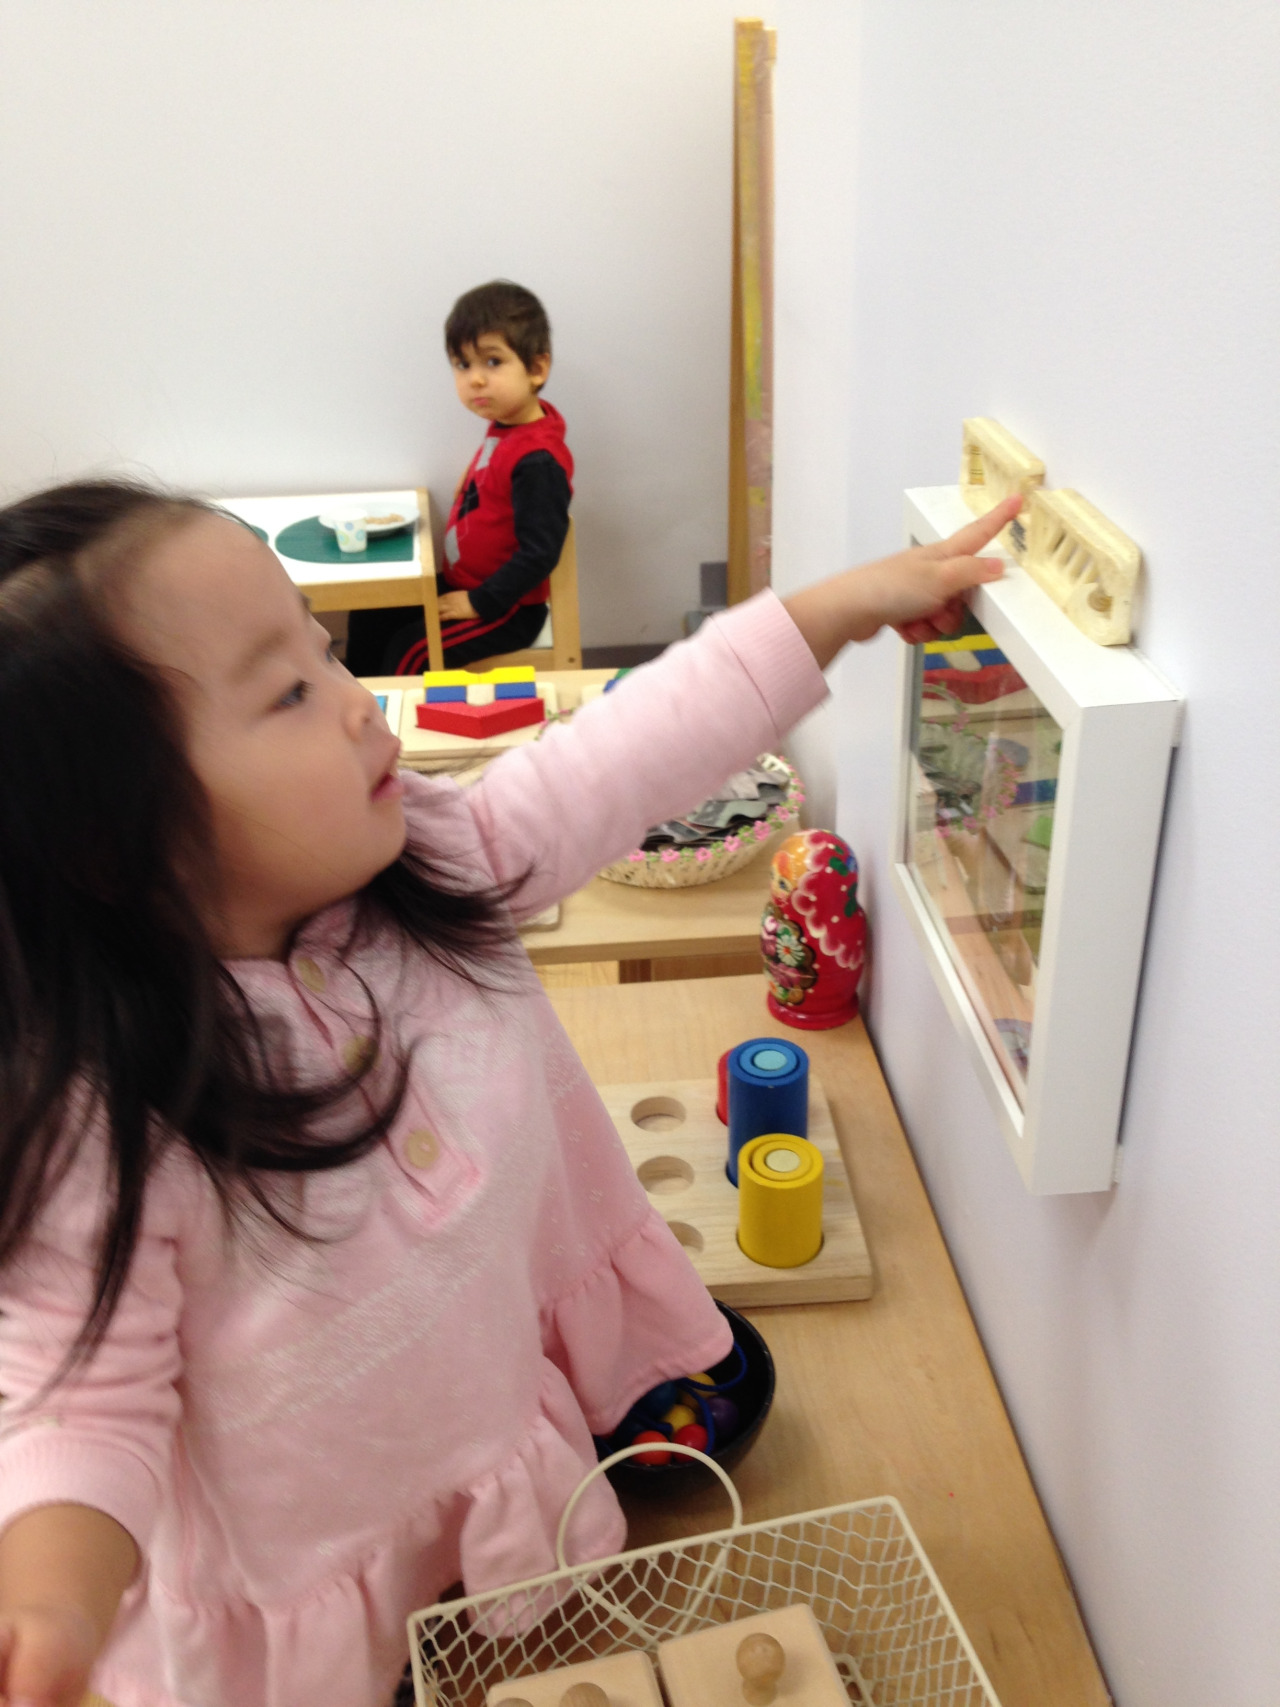 Recently, a level was discovered on the shelf in the Toddler 1 classroom. Many students enjoy sitting peacefully watching the bubble go back and forth, while a few were determined to learn how to use it. One Toddler went around to each of the classroom photographs, step stool in tow, carefully examining the tiny bubble to test how level the artwork was hanging!